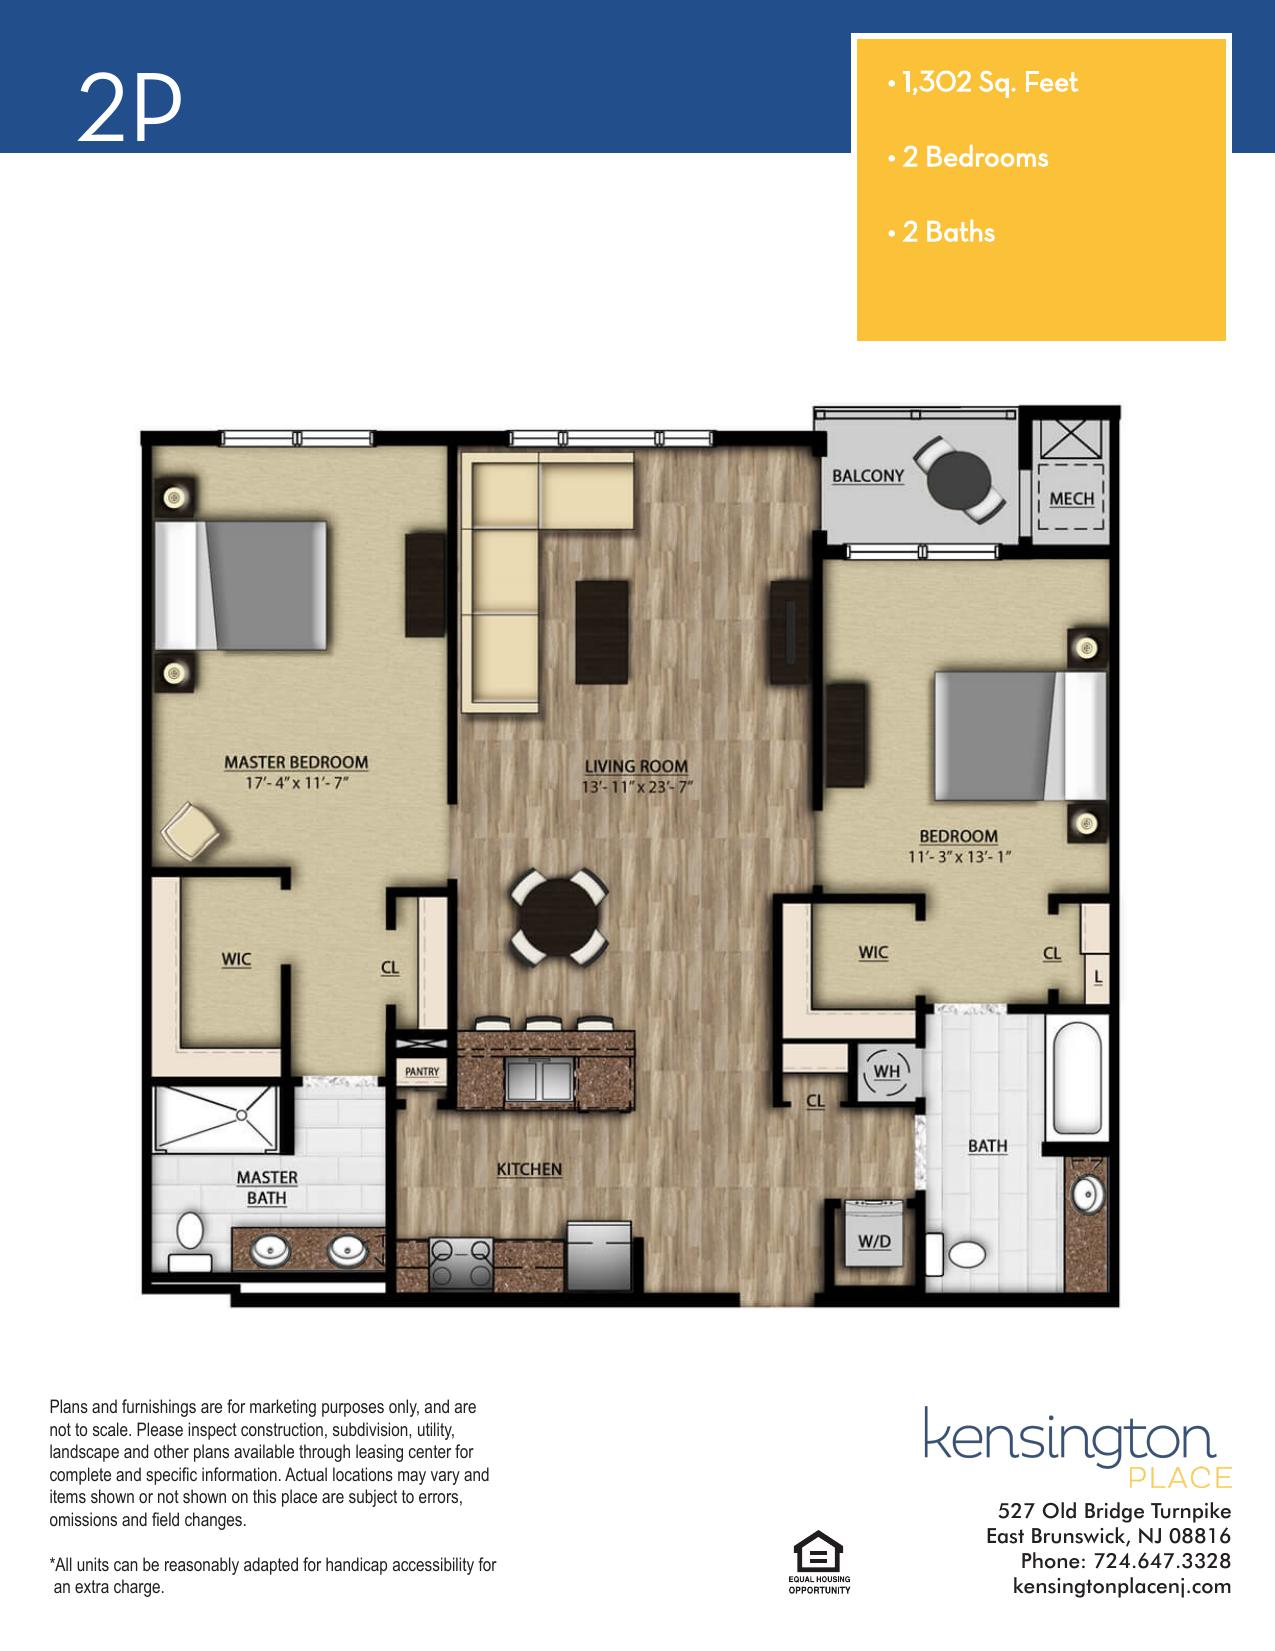 Kensington Place Apartment Floor Plan 2P